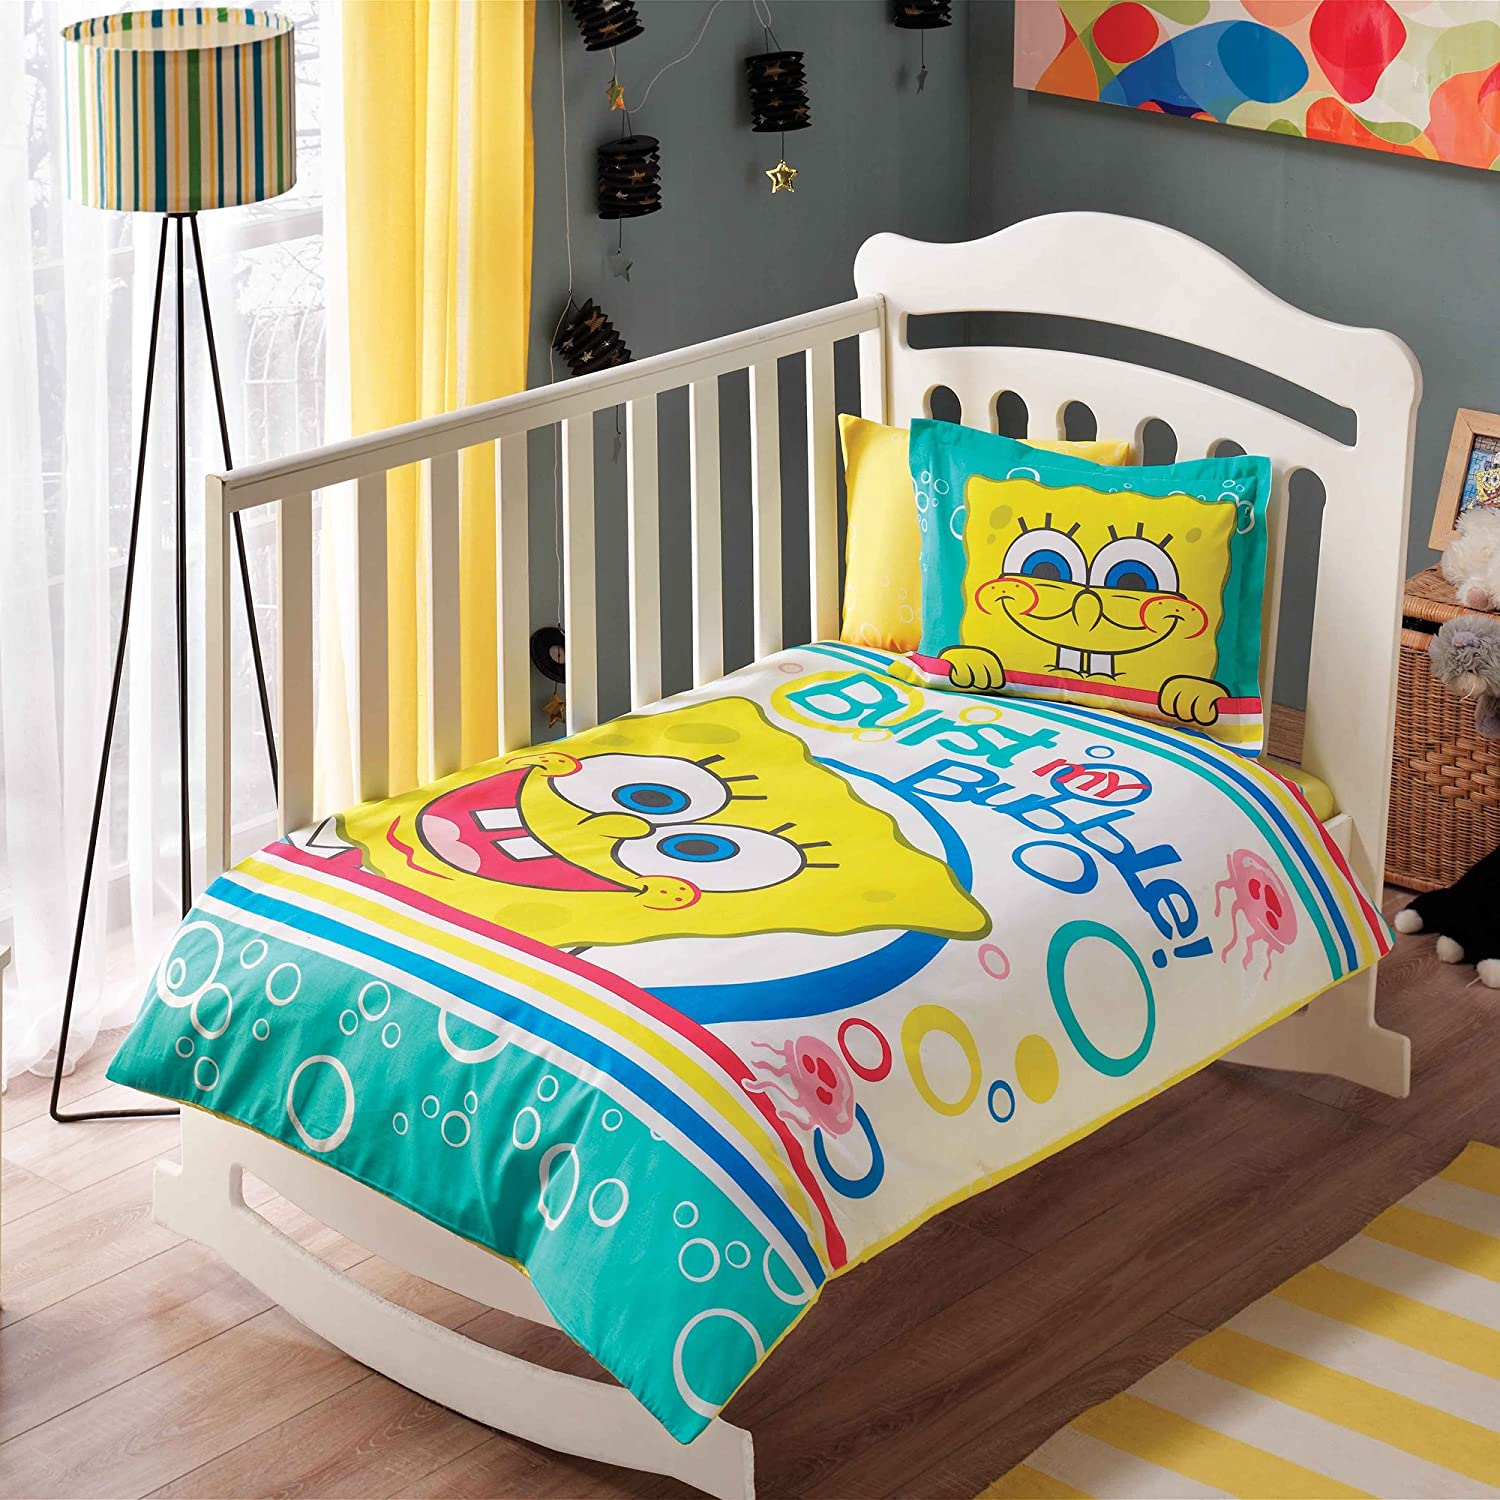 100% Organic Cotton Soft and Healthy Baby Crib Bed Duvet Cover Set 4 Pieces, Sponge Bob Bubble Baby Bedding Set TAC